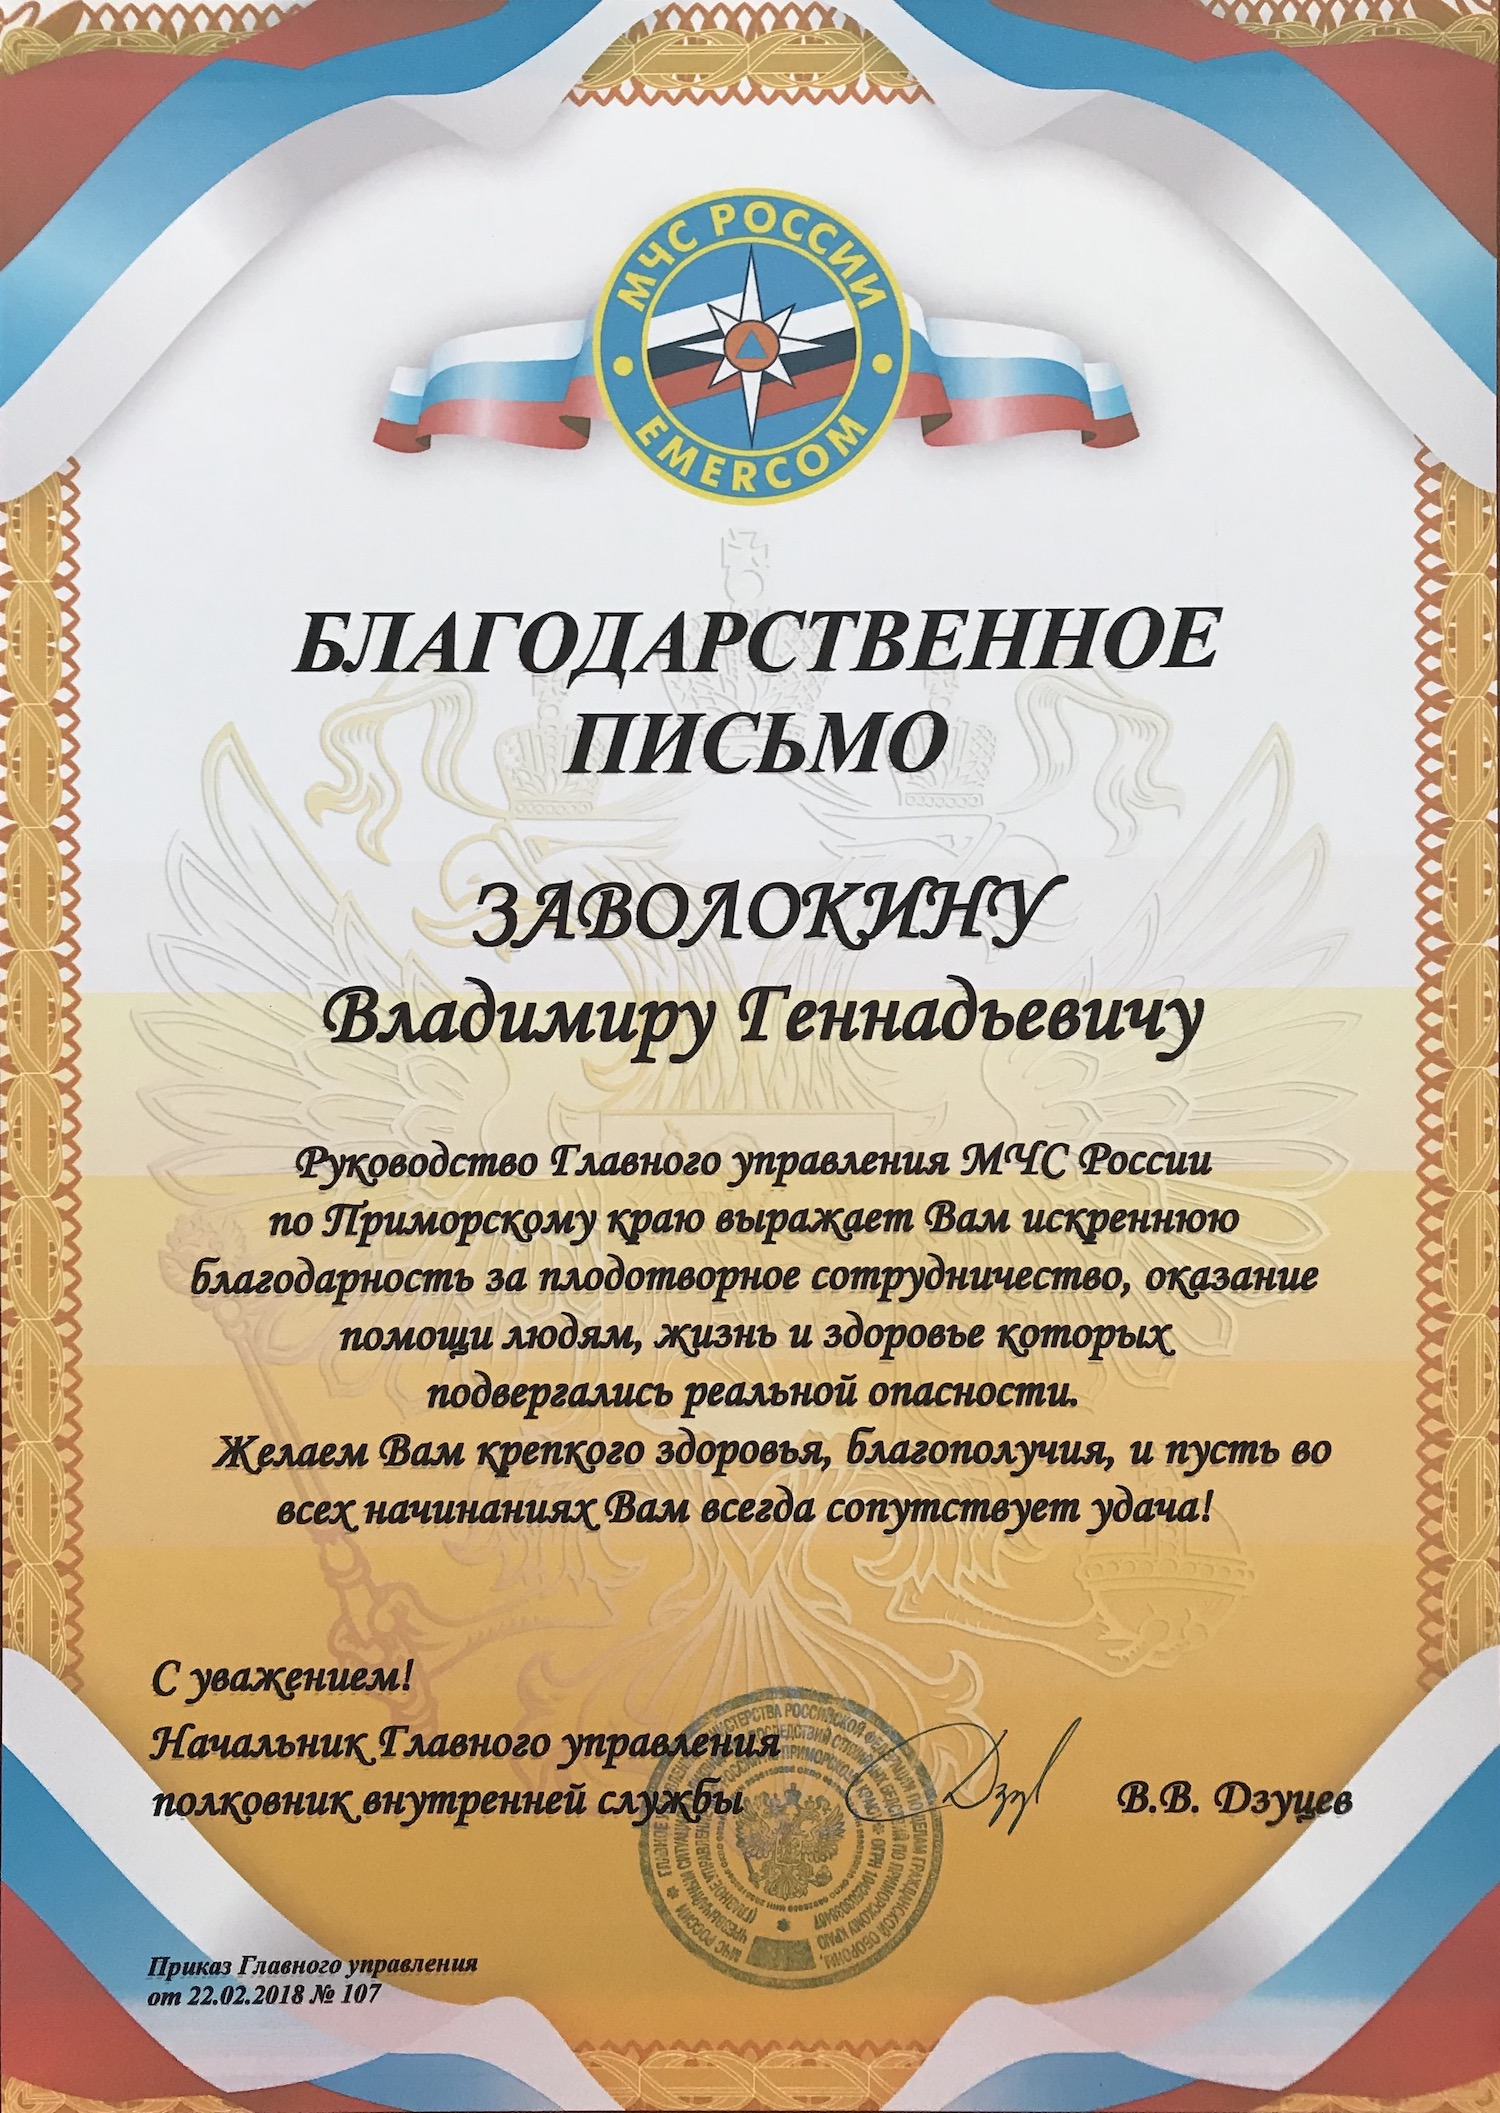 Letter of gratitude from the Main Directorate of the Ministry for Emergencies of Russia for the Primorsky region